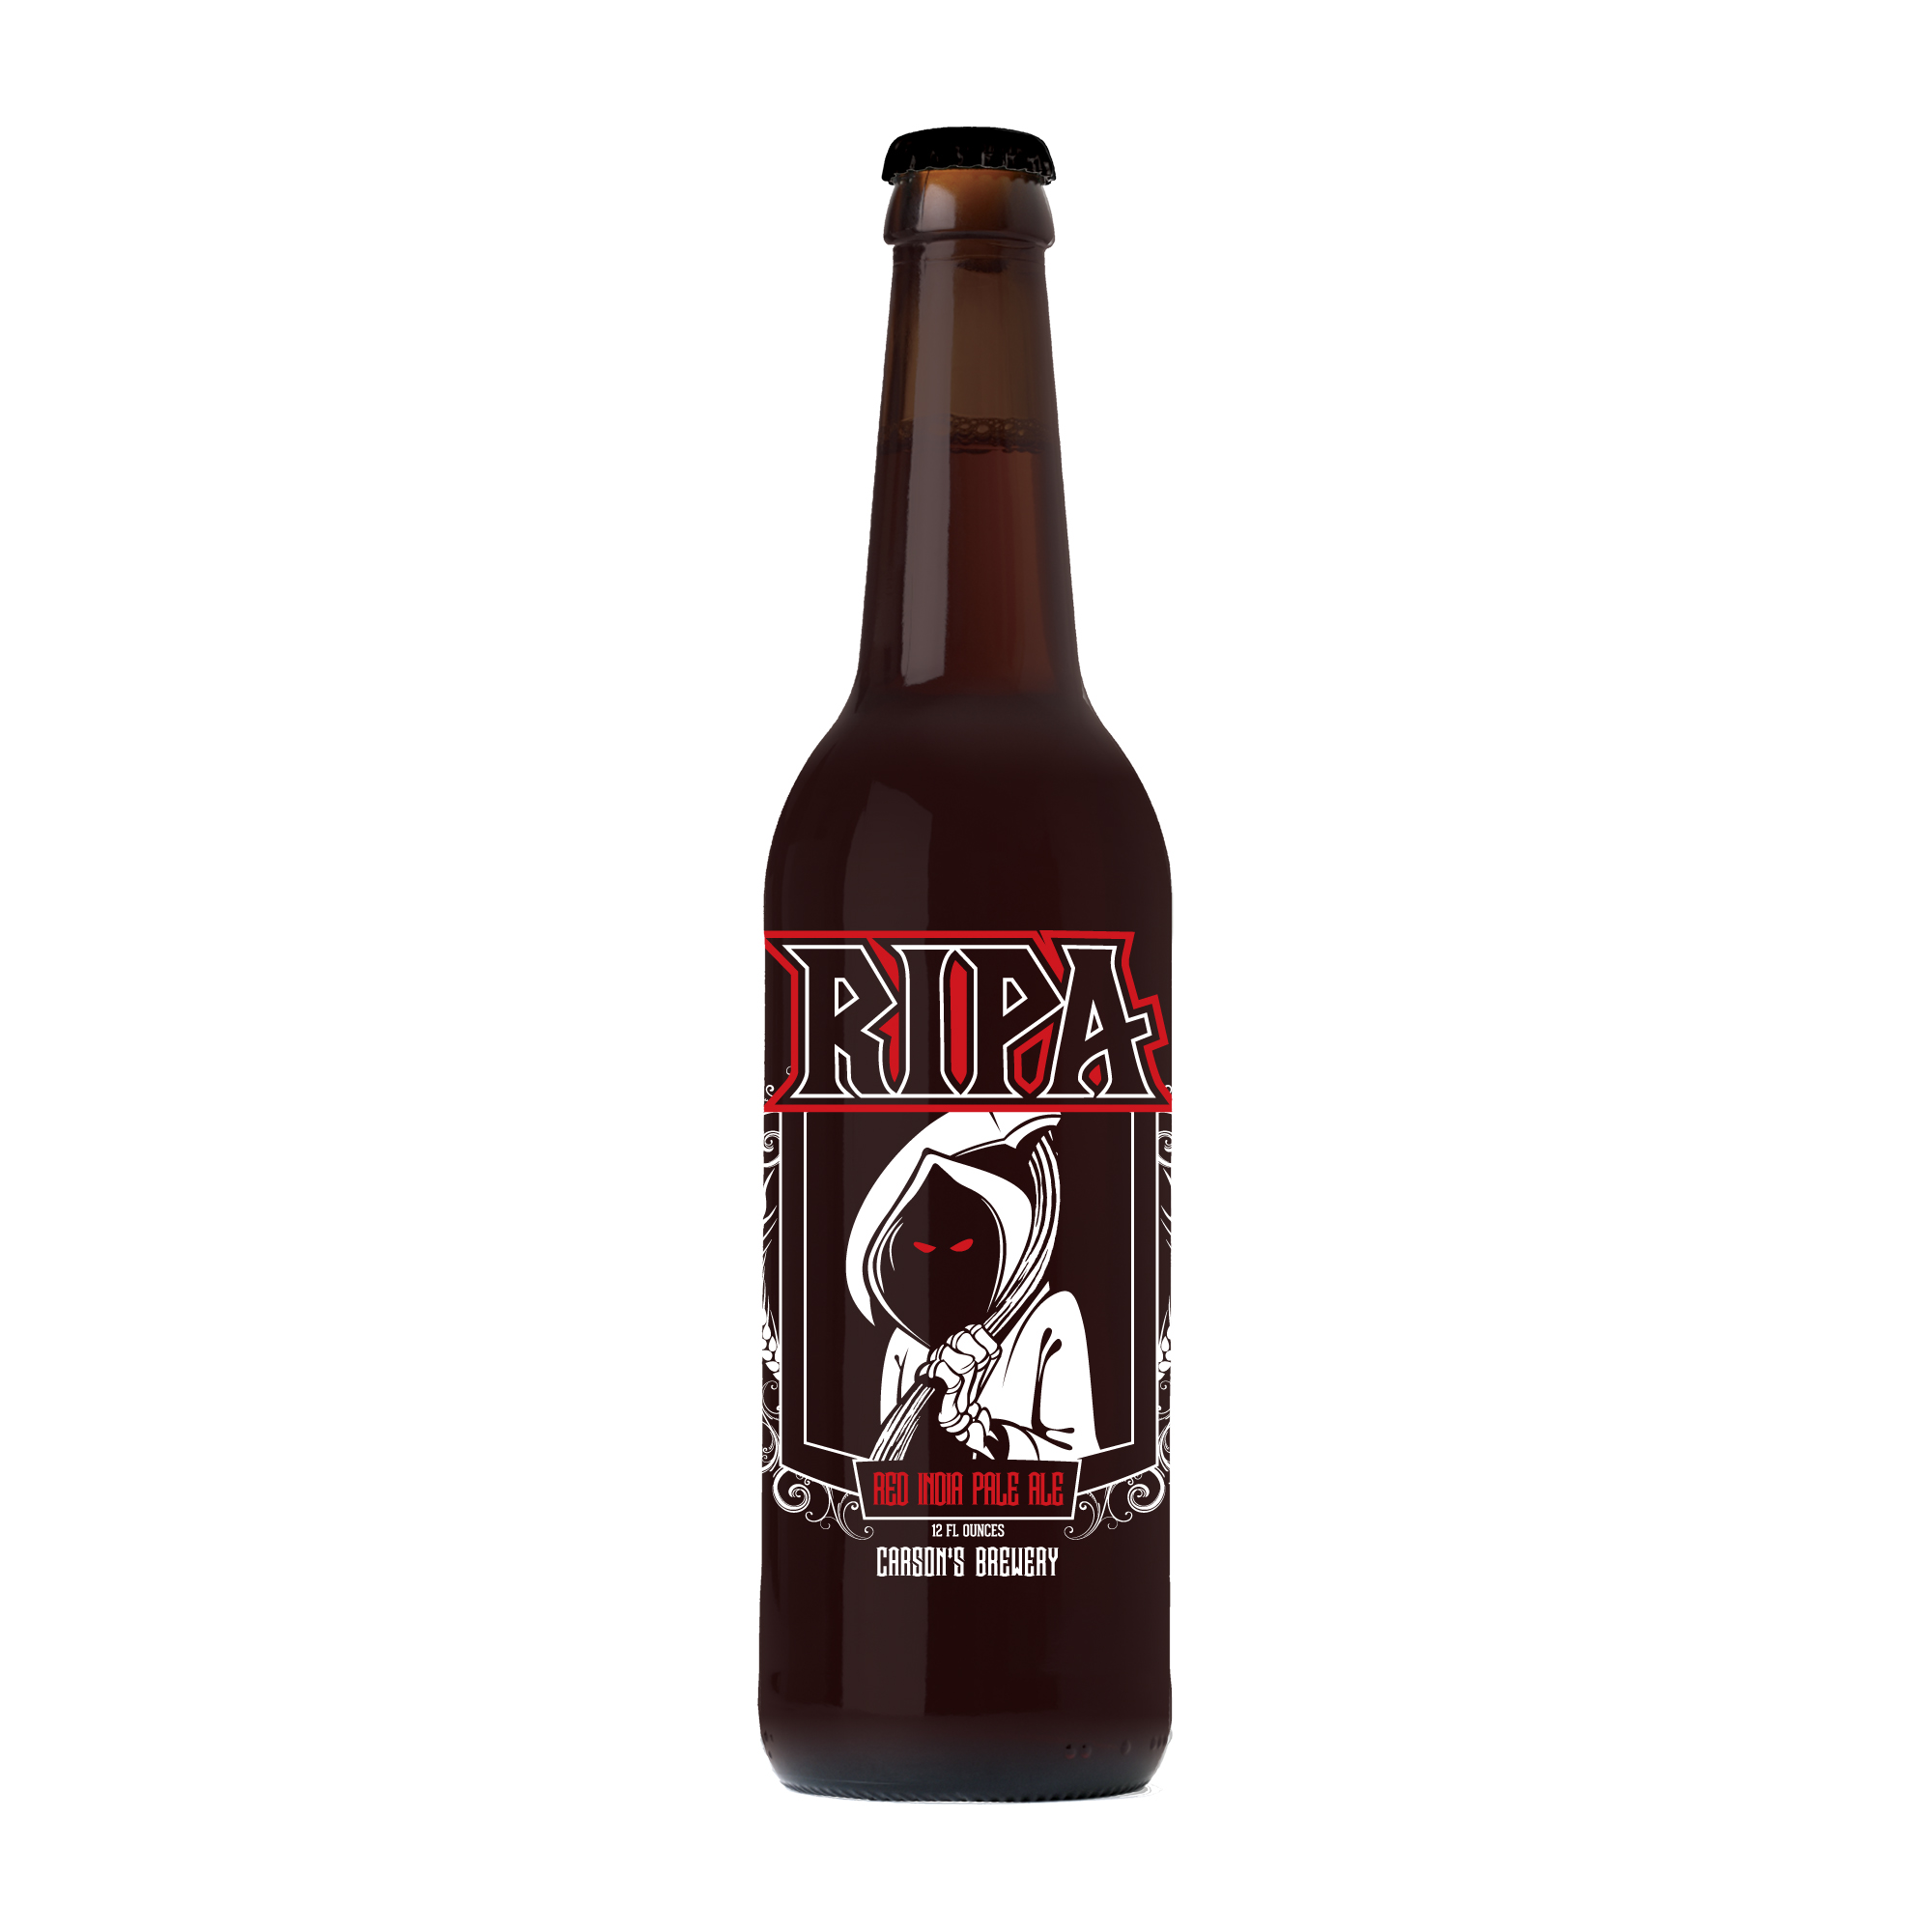 Ripa_Bottle